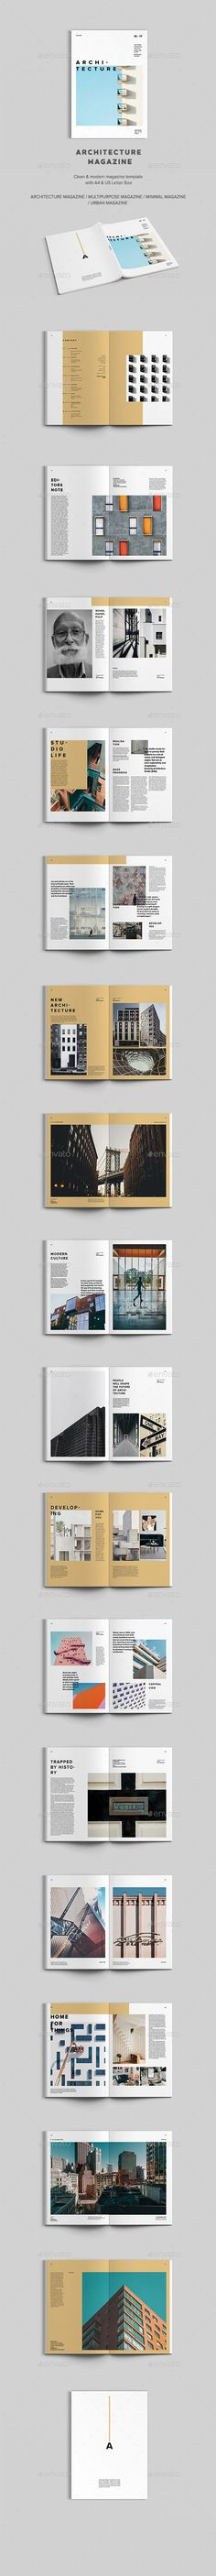 Architecture Magazine by Viktoribat Architecture Magazine is a 34 page InDesign brochure template designed with a unique, minimal, clean and modern layout. Architecture Design, Architecture Magazines, Architecture Portfolio, Web Design, Print Design, Graphic Design, Creative Design, Print Print, Flyer Design